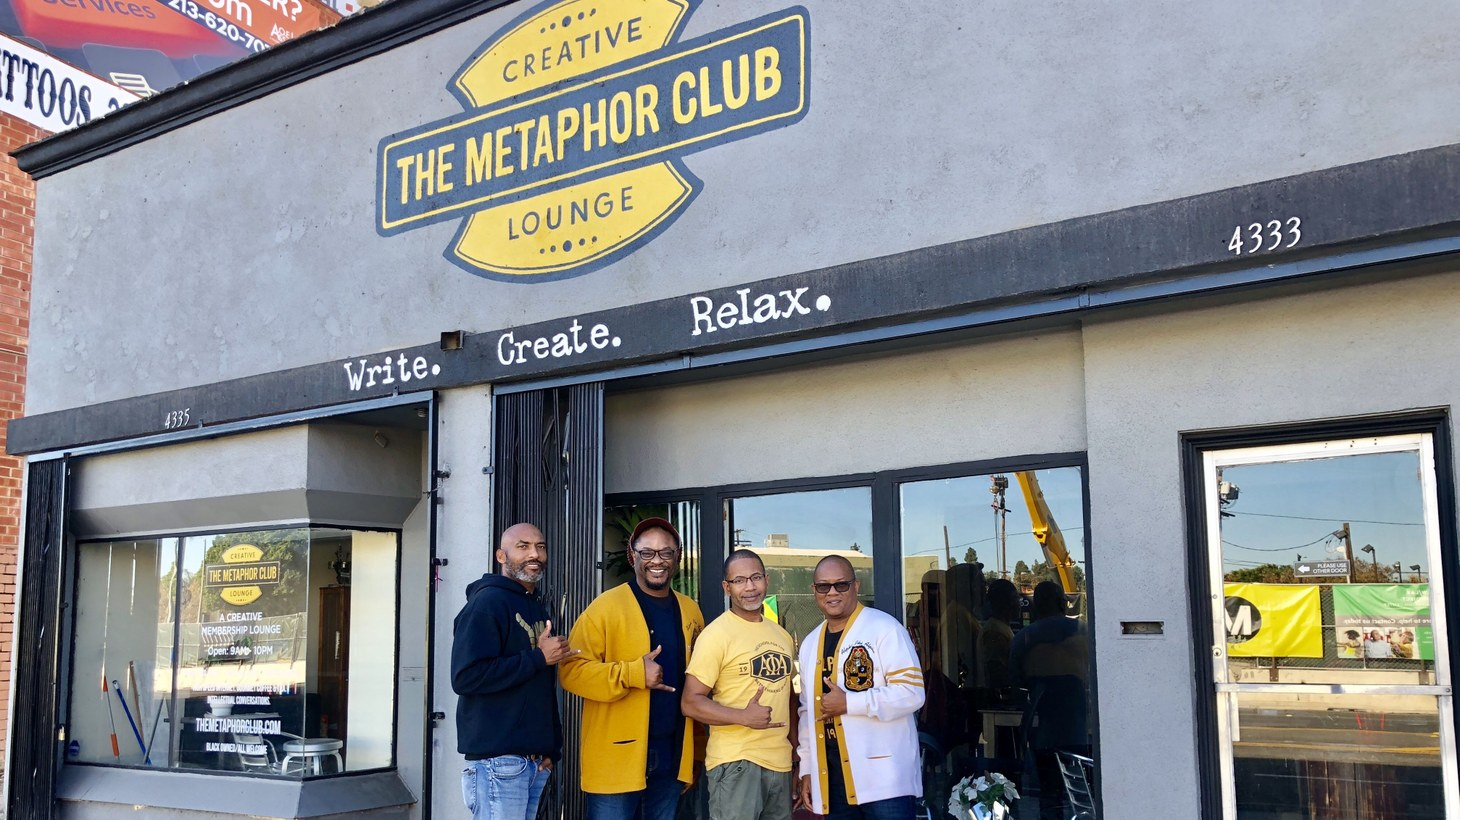 Lawrence Ross (second from the left) stands with fellow co-founders of the Metaphor Club, a co-working space in Leimert Park. He says business was thriving before COVID-19.